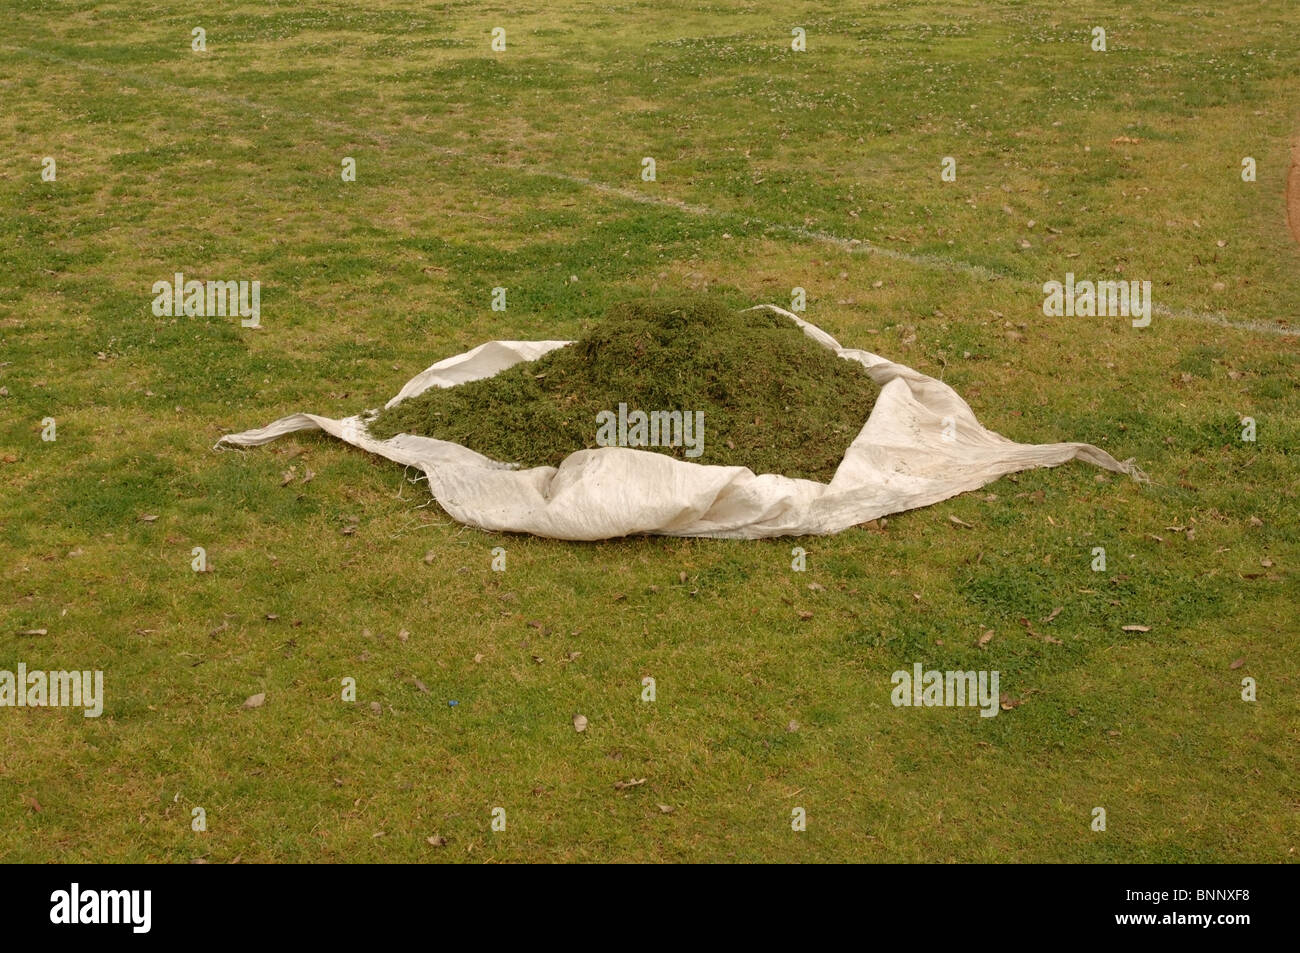 Freshly cut grass clippings on a tarp. - Stock Image